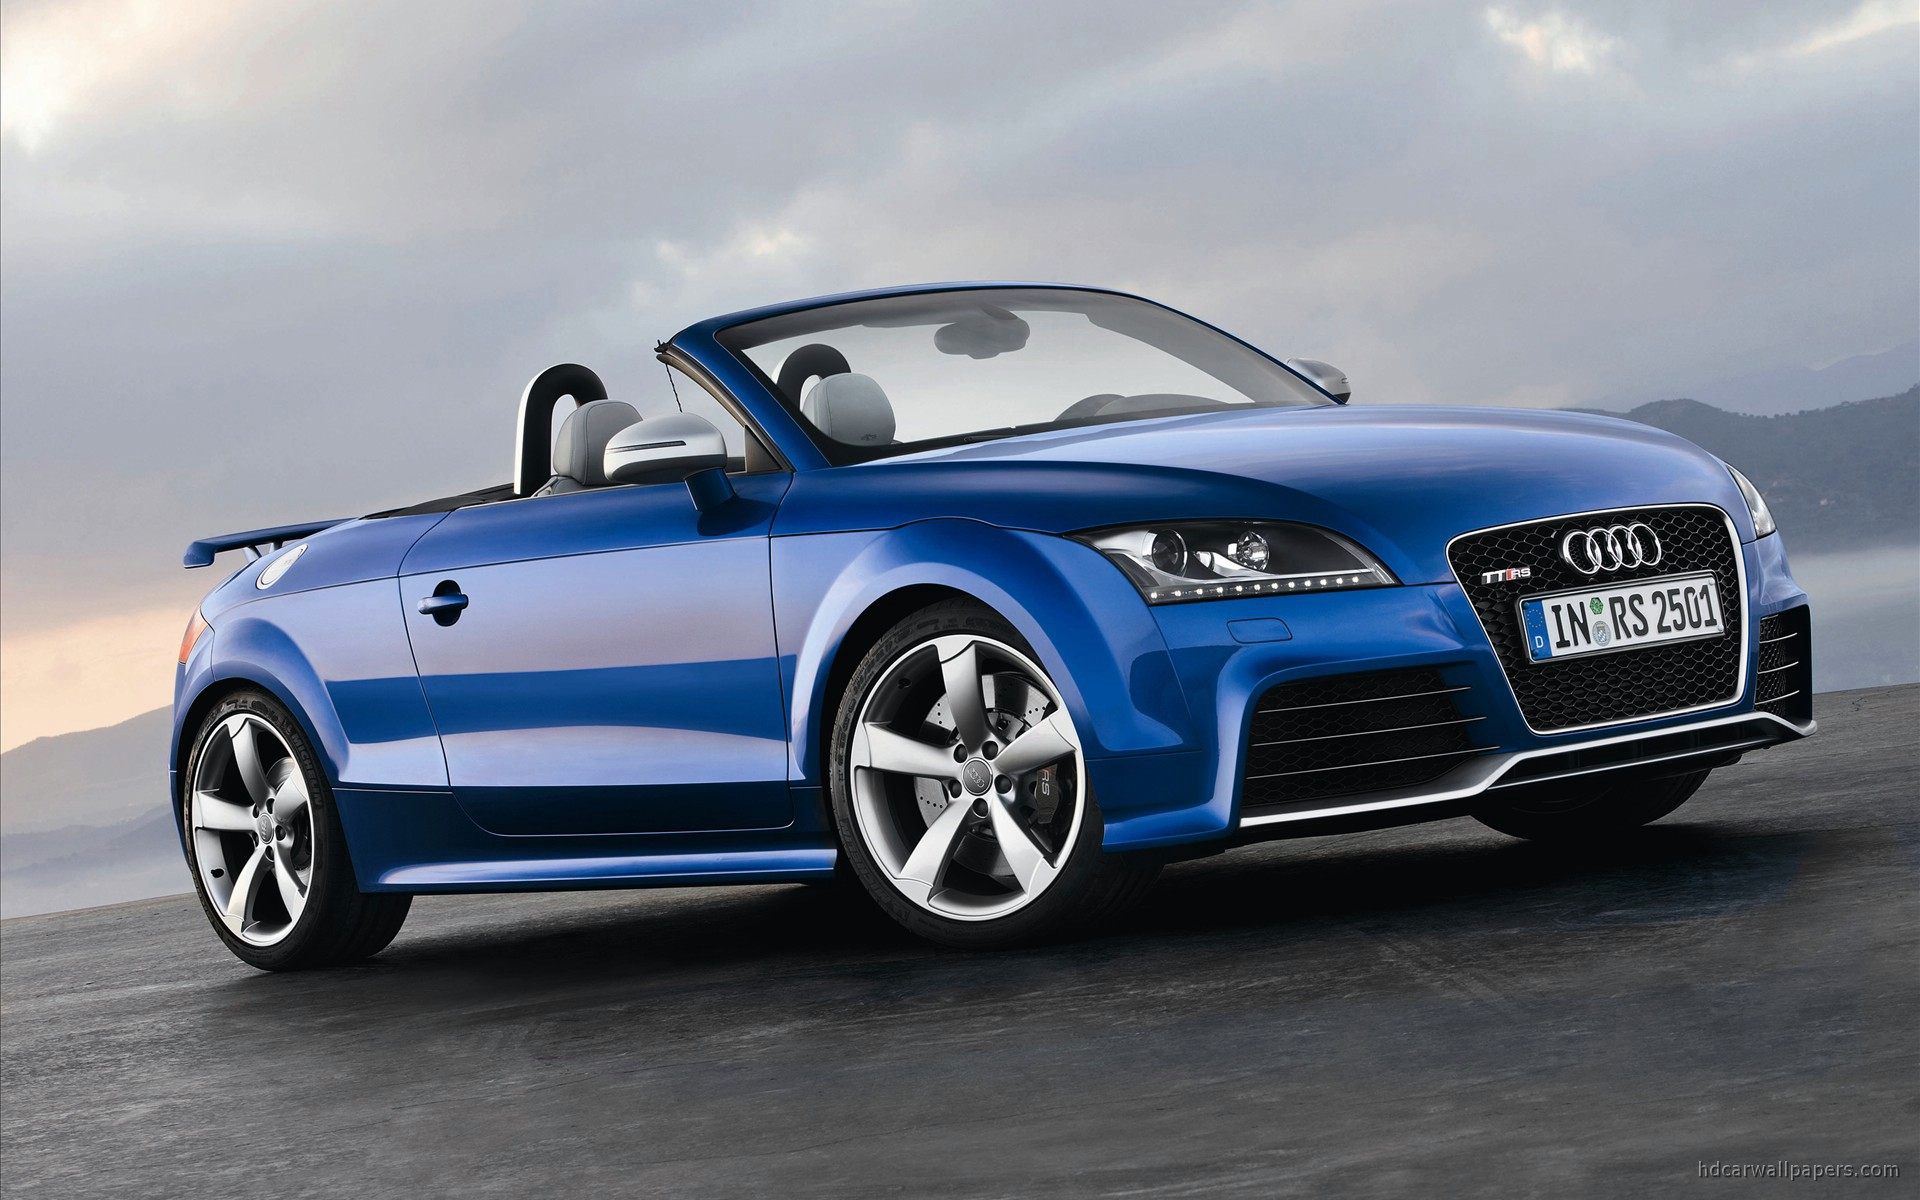 2010 audi tt rs roadster wallpaper hd car wallpapers. Black Bedroom Furniture Sets. Home Design Ideas